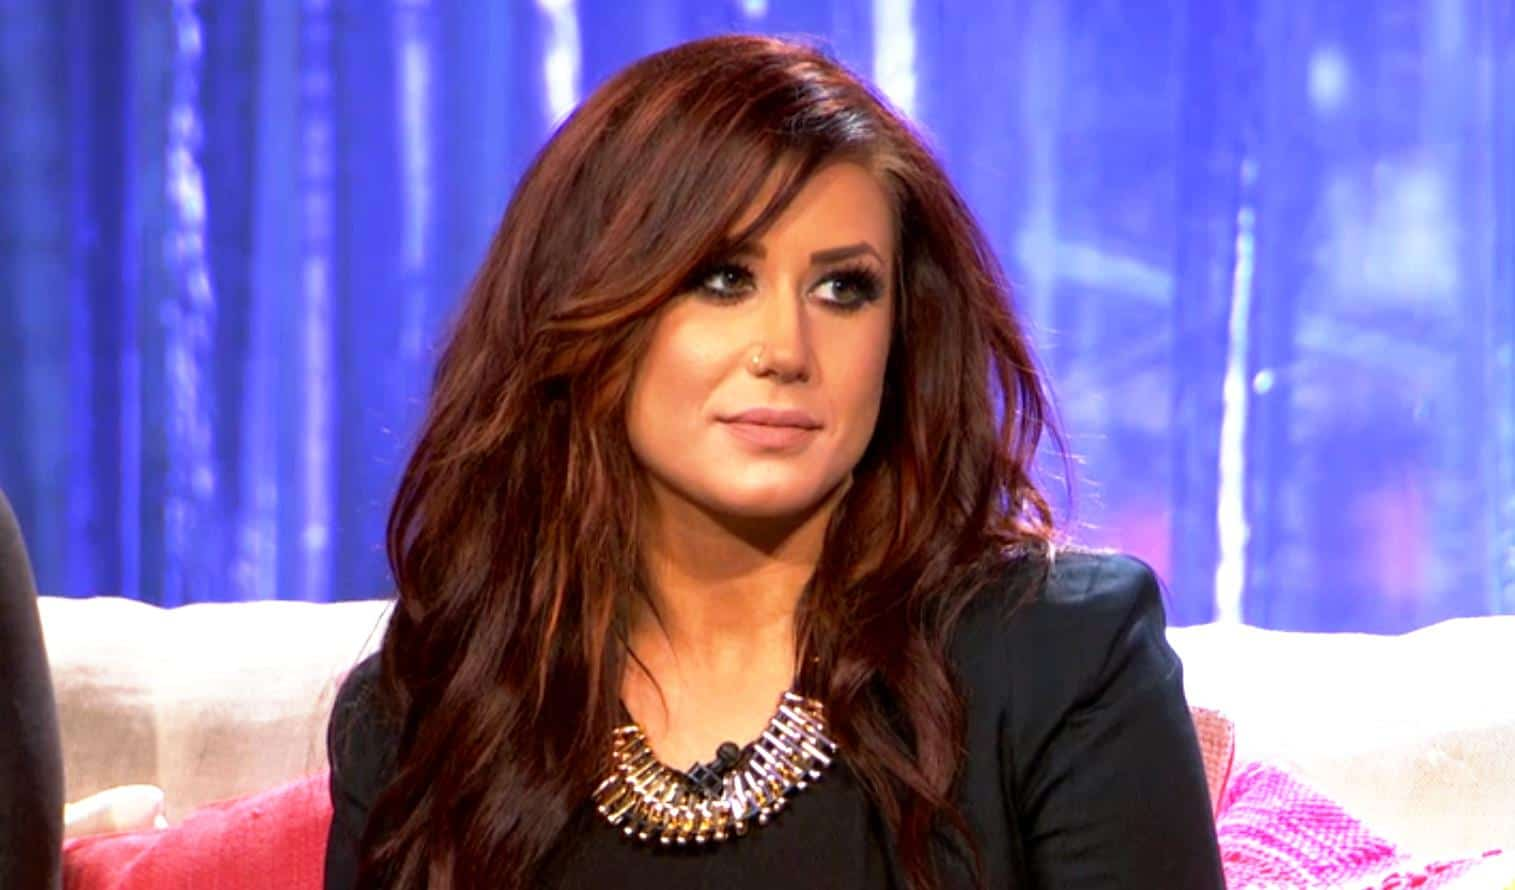 Chelsea Houska skips reunion Teen Mom 2 8b